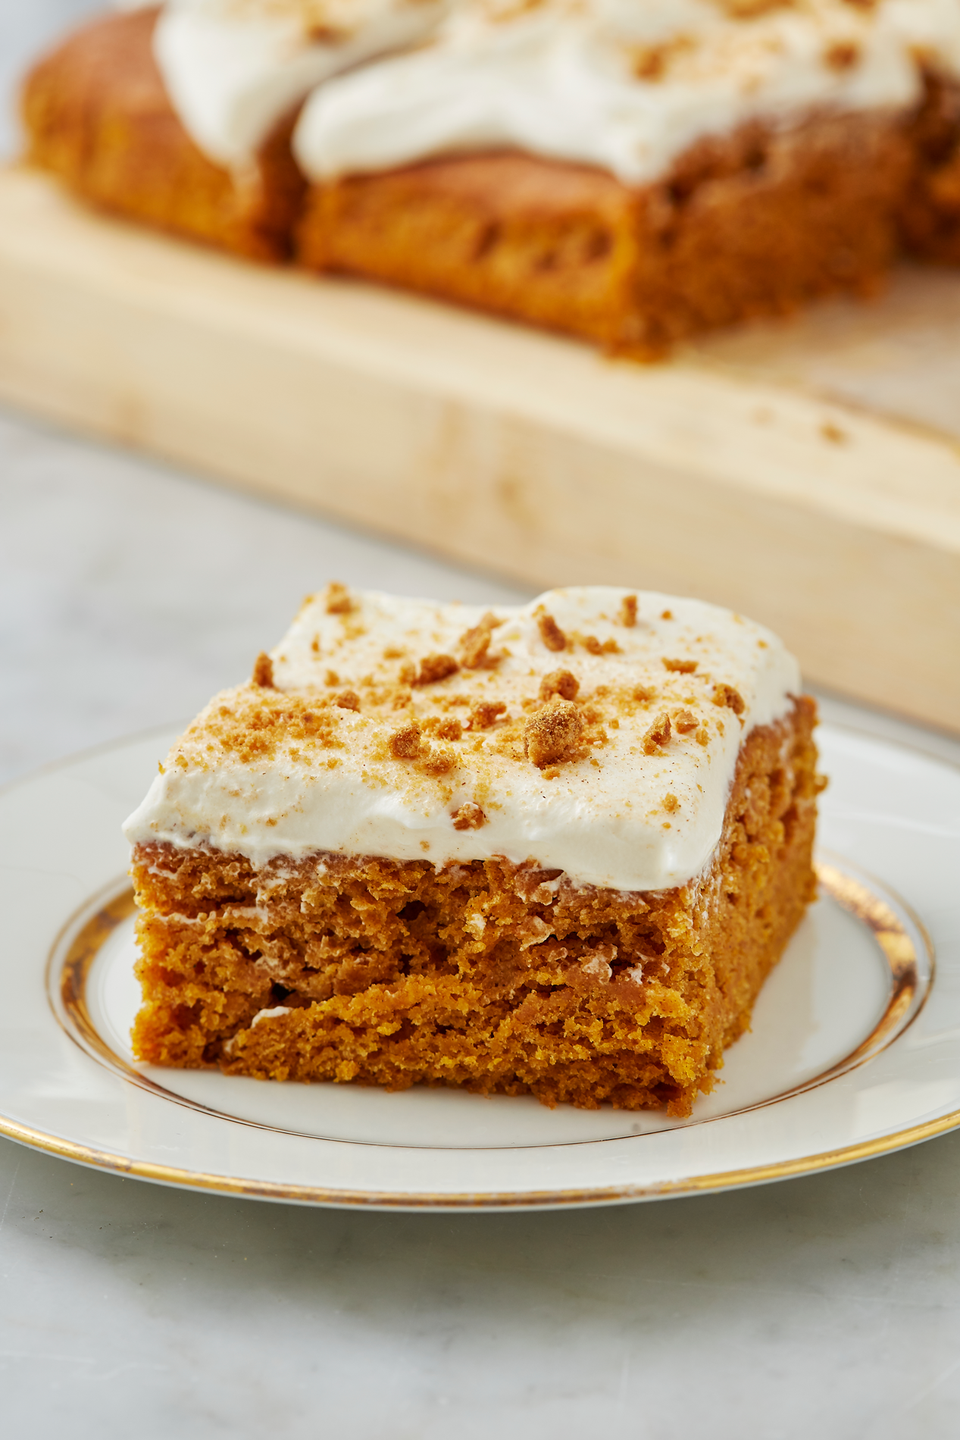 """<p>I really need you to believe us when we say we are obsessed with this cake. It's easily one of our favorite <a href=""""https://www.delish.com/cooking/g720/beyond-pie-pumpkin-desserts/"""" rel=""""nofollow noopener"""" target=""""_blank"""" data-ylk=""""slk:pumpkin desserts"""" class=""""link rapid-noclick-resp"""">pumpkin desserts</a> and we aren't just saying that.<br></p><p>Get the recipe from <a href=""""https://www.delish.com/cooking/recipe-ideas/a28413646/easy-pumpkin-cake-recipe/"""" rel=""""nofollow noopener"""" target=""""_blank"""" data-ylk=""""slk:Delish"""" class=""""link rapid-noclick-resp"""">Delish</a>.</p>"""